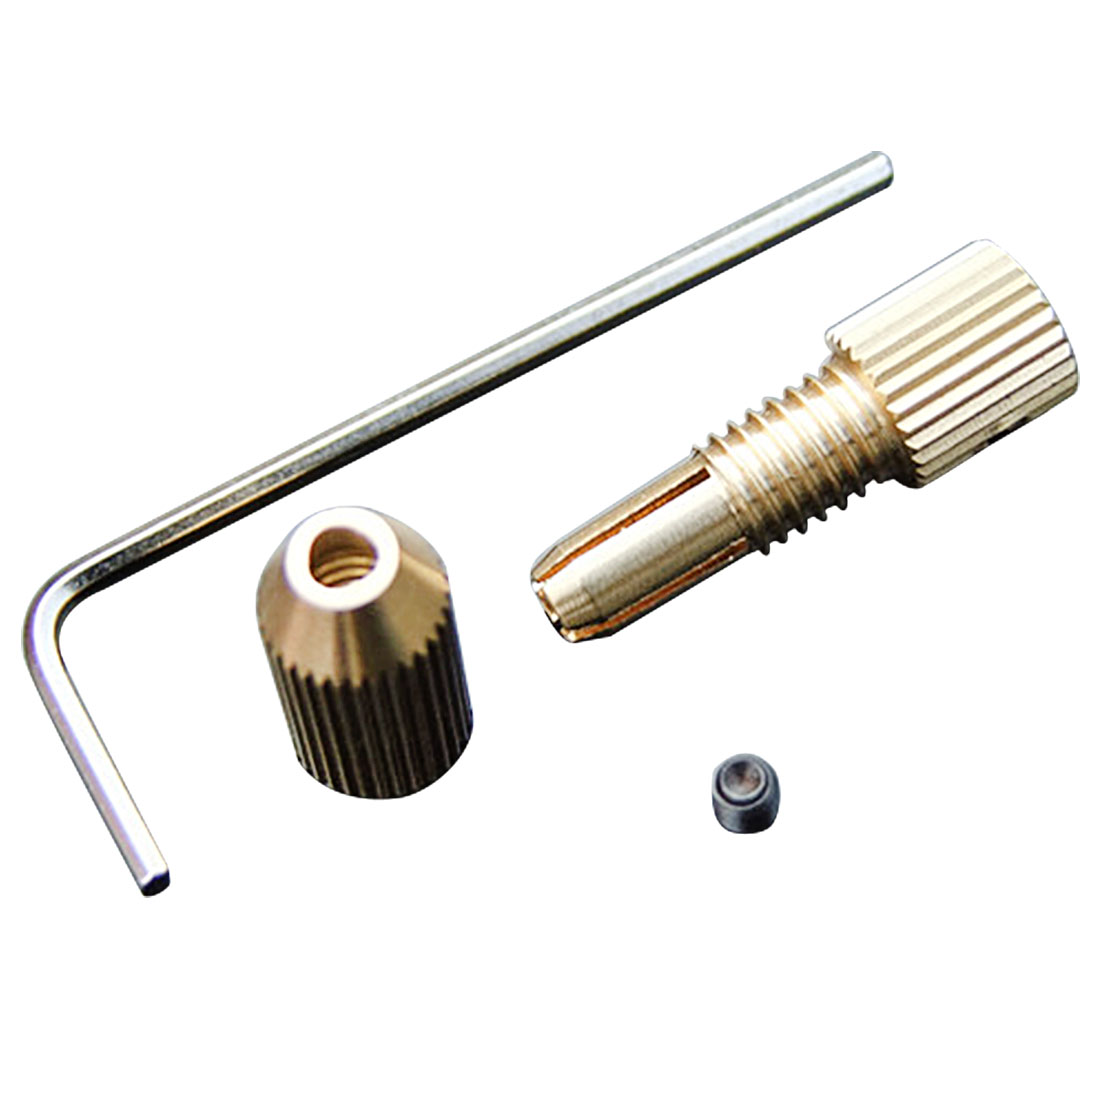 0.8mm-1.5mm Drill Micro Drill Bit Clamp Fixture Chuck 2.0mm Brass Electric Motor Shaft Clamp Fixture Chuck Mini Small